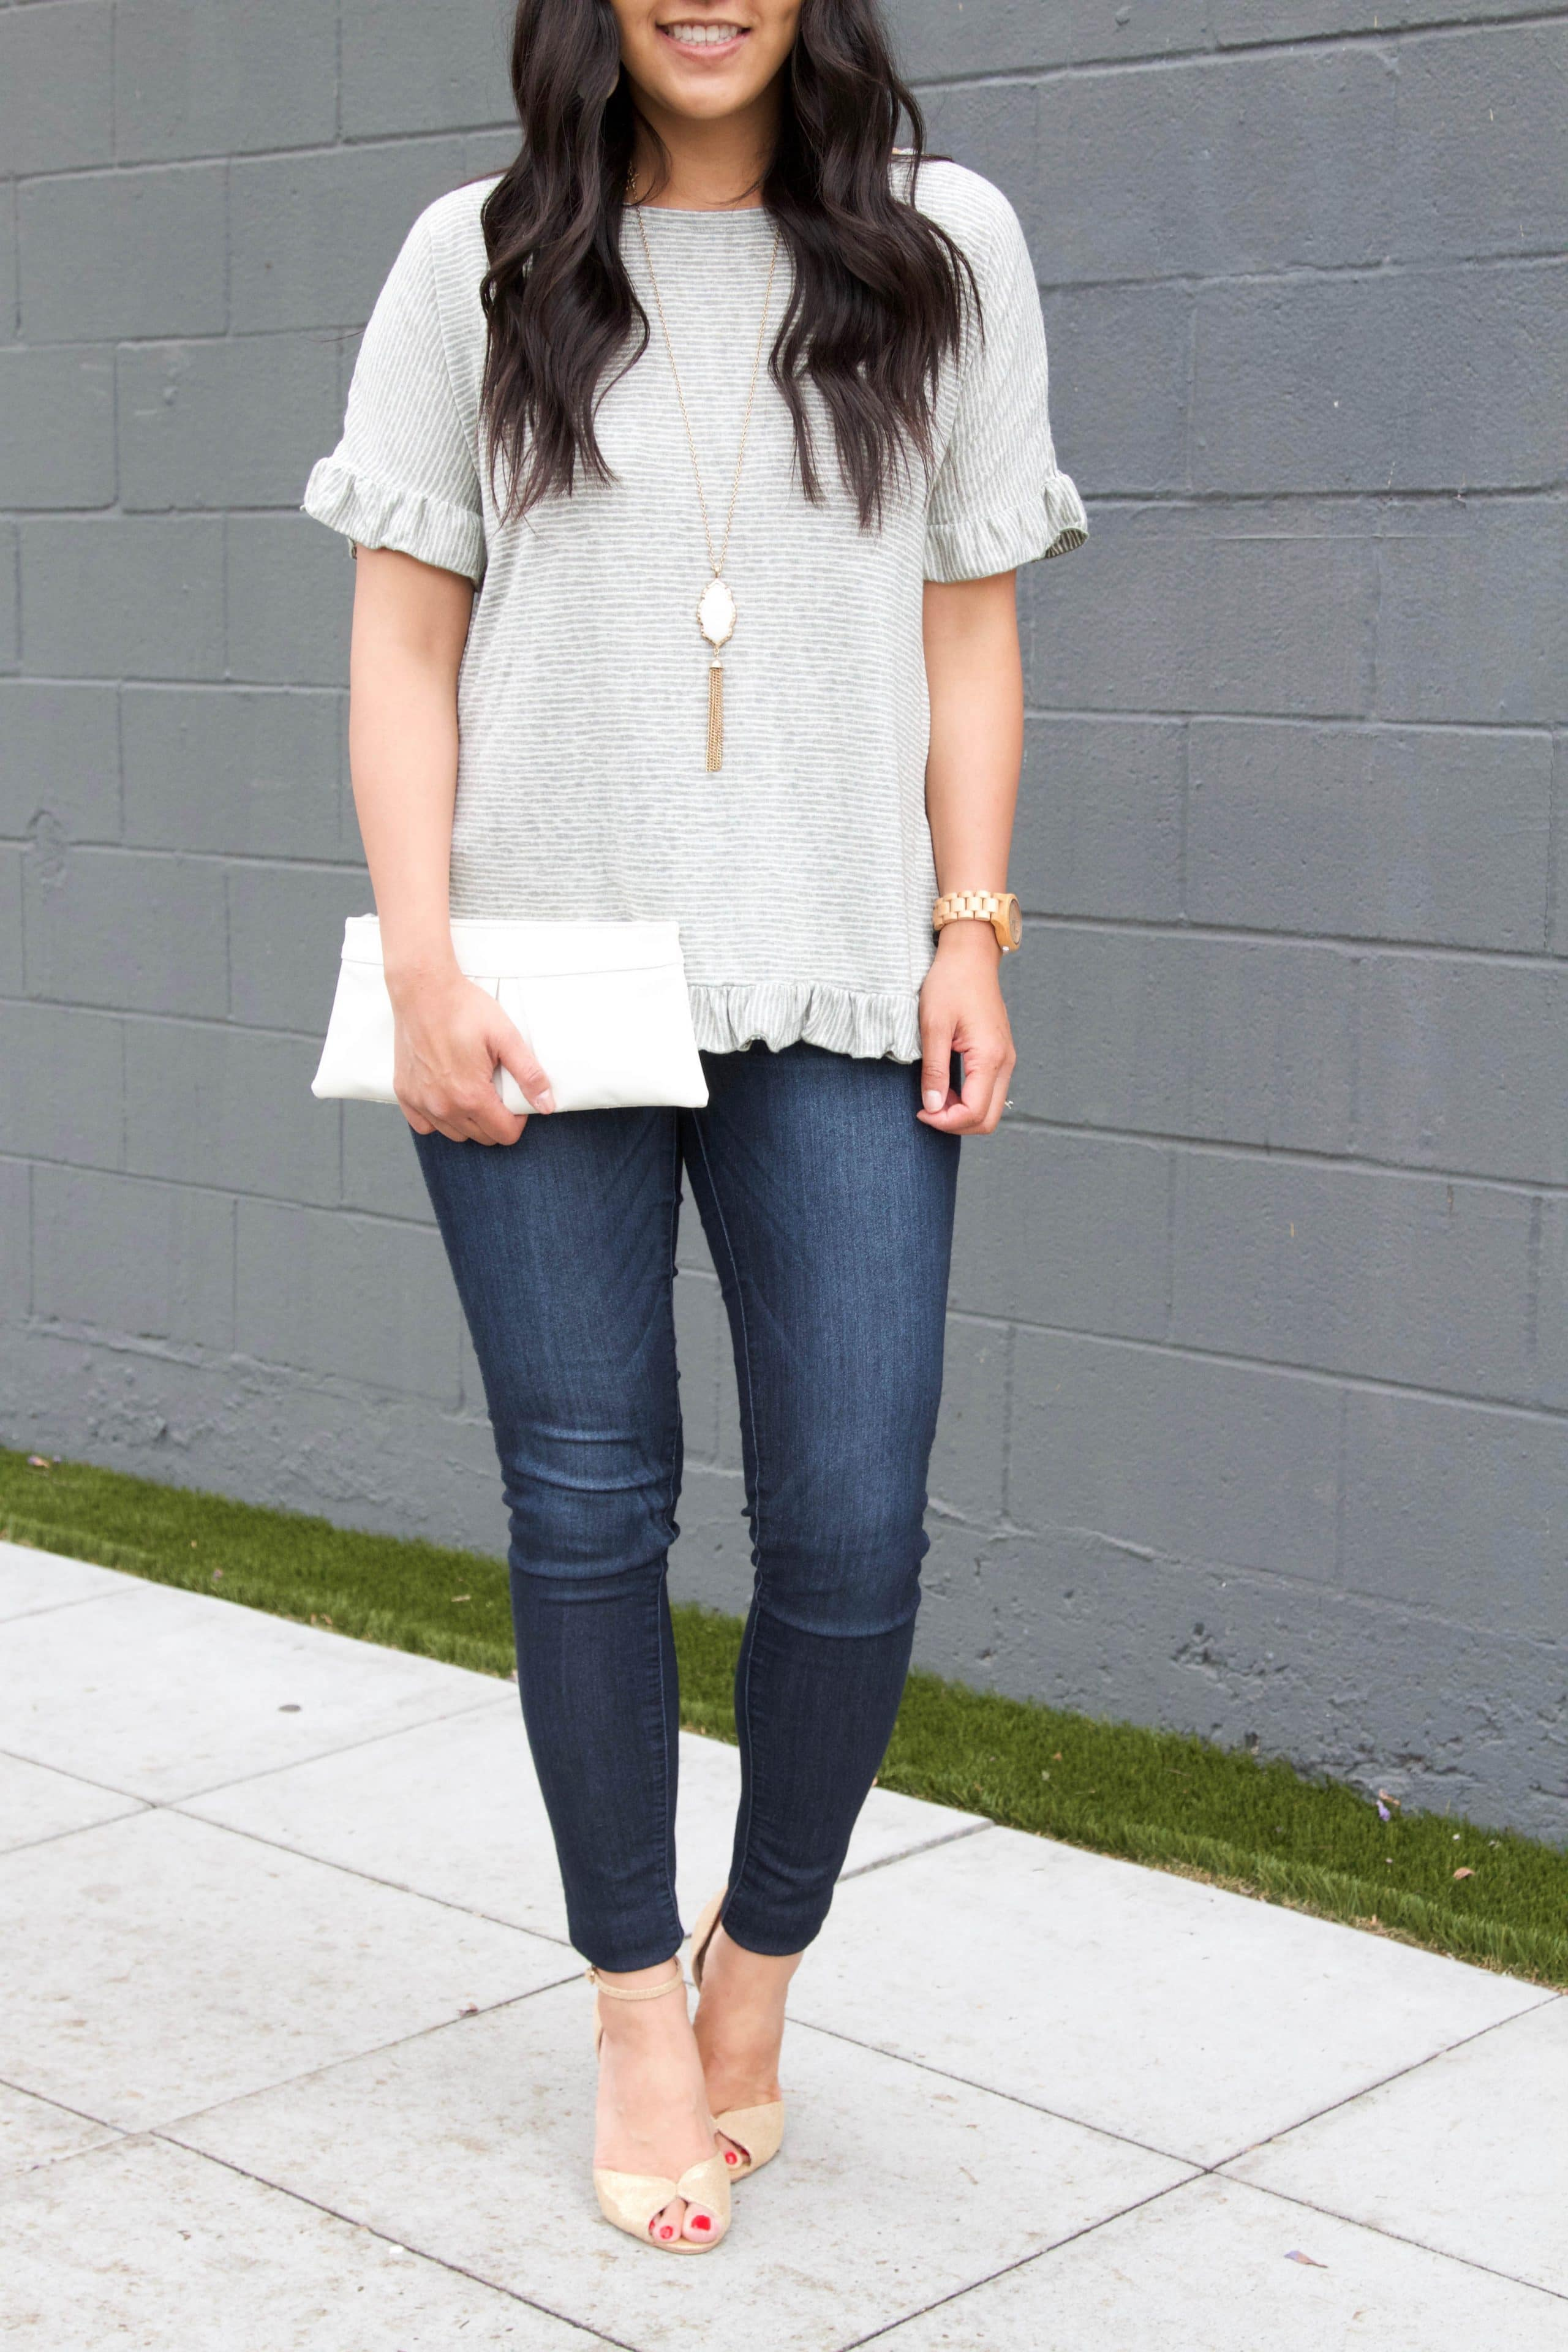 Skinnies + Ruffle Top + Gold Pumps + White Necklace